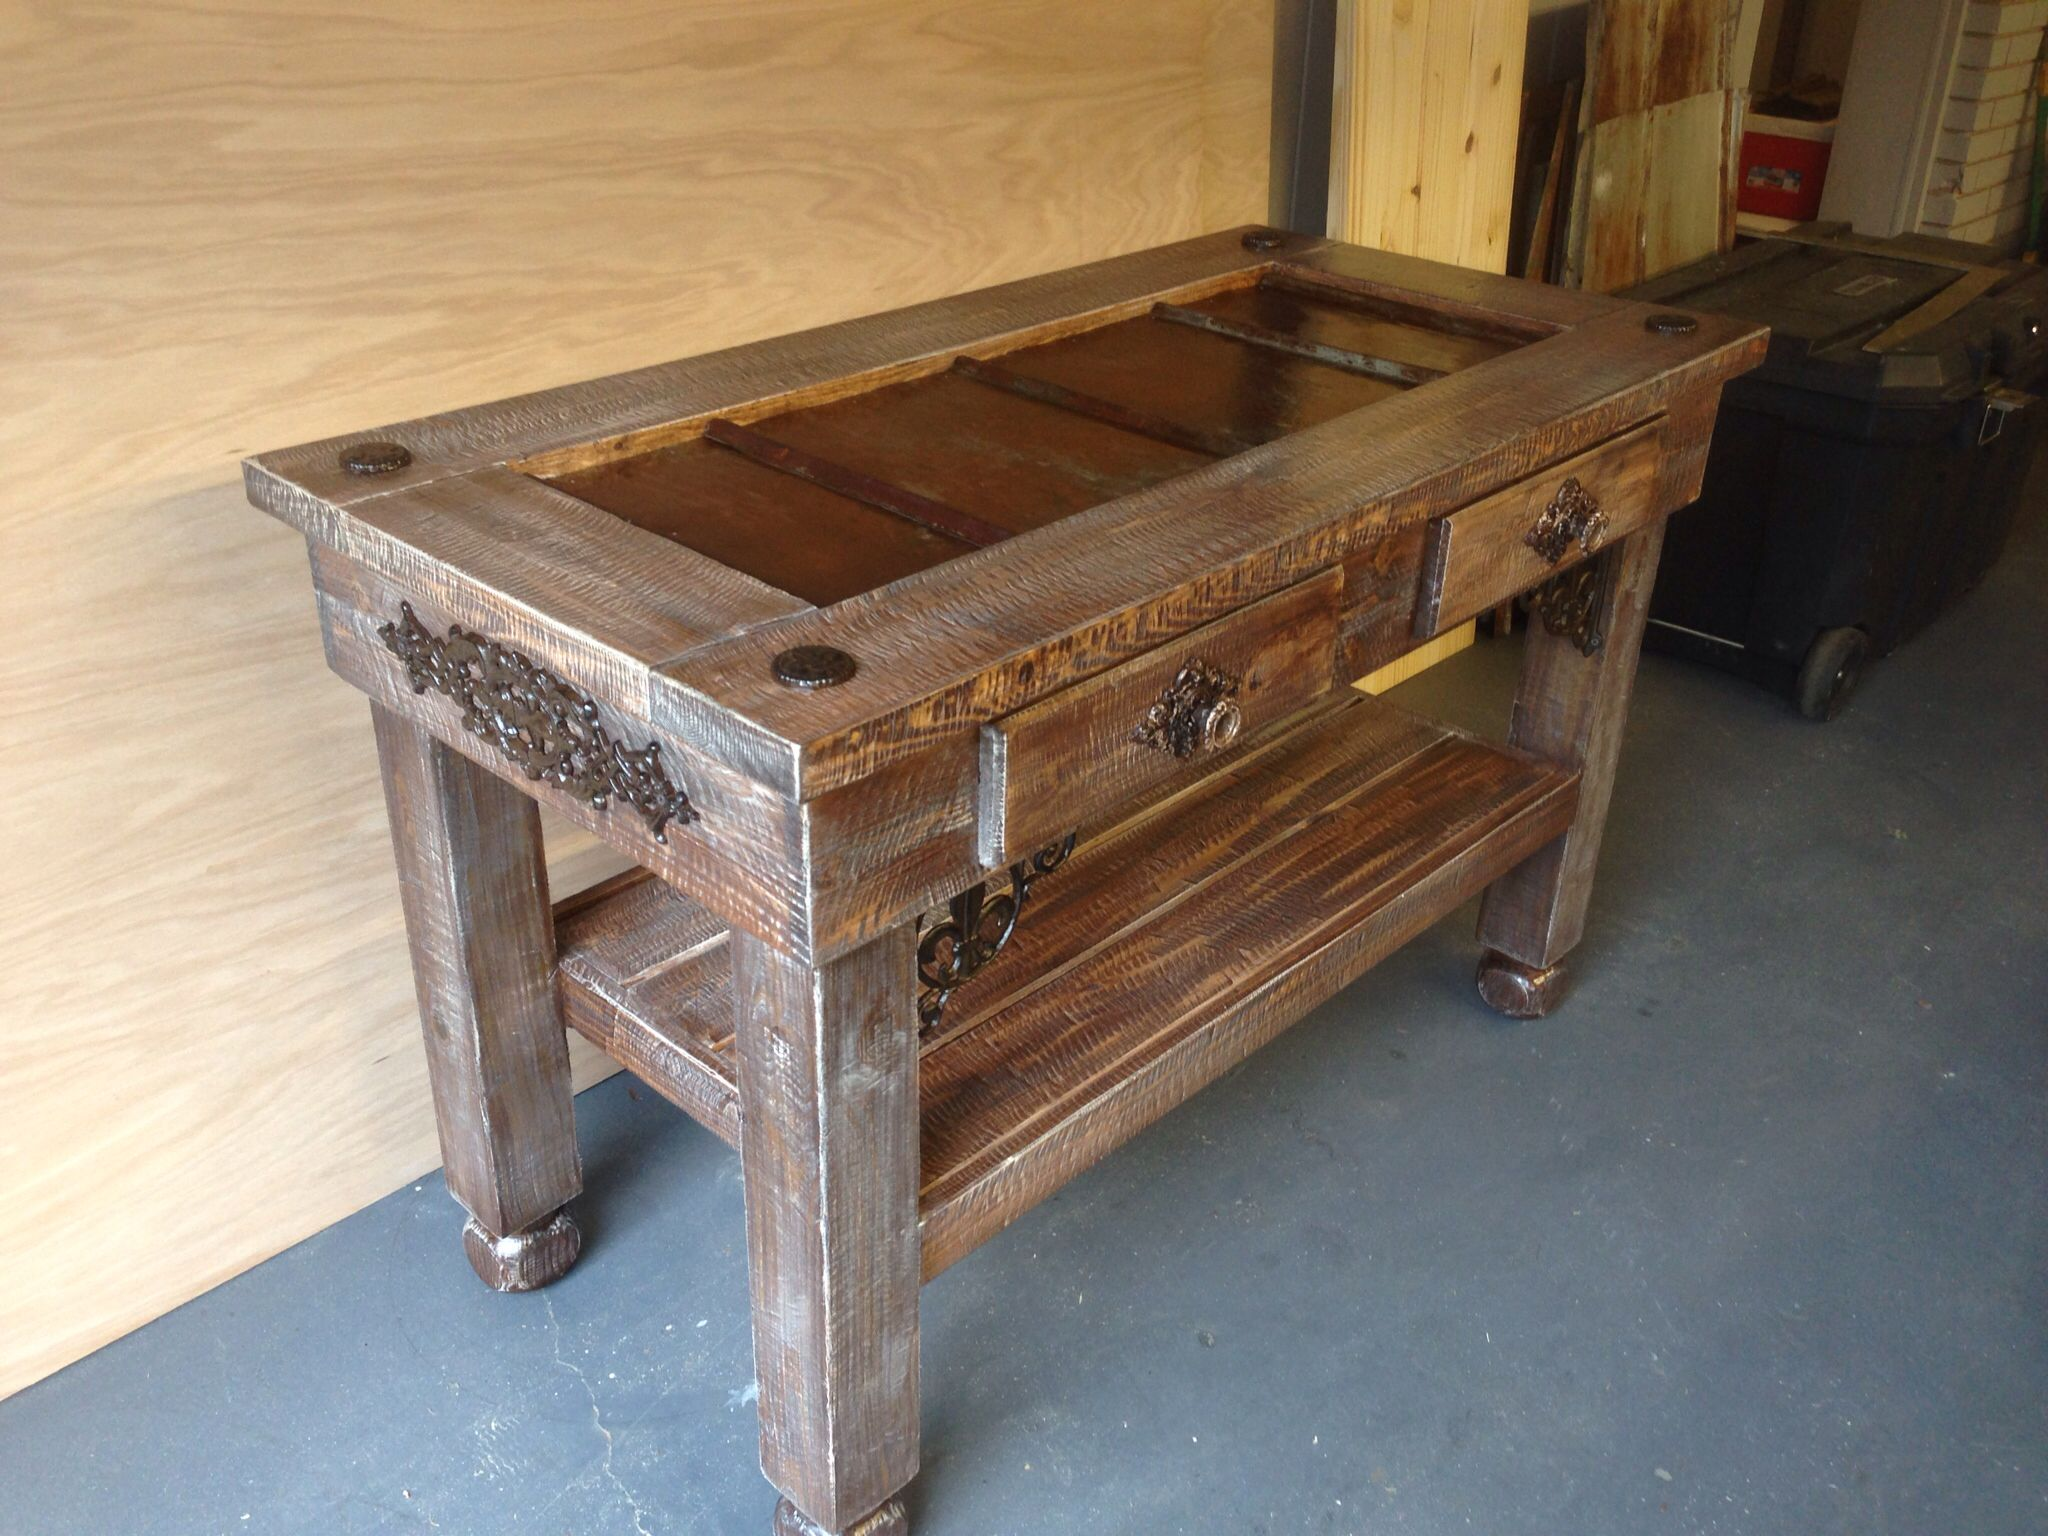 tin furniture. i build furniture out of old things that we find and create a unique look for example this is an entryway table built around barn tin